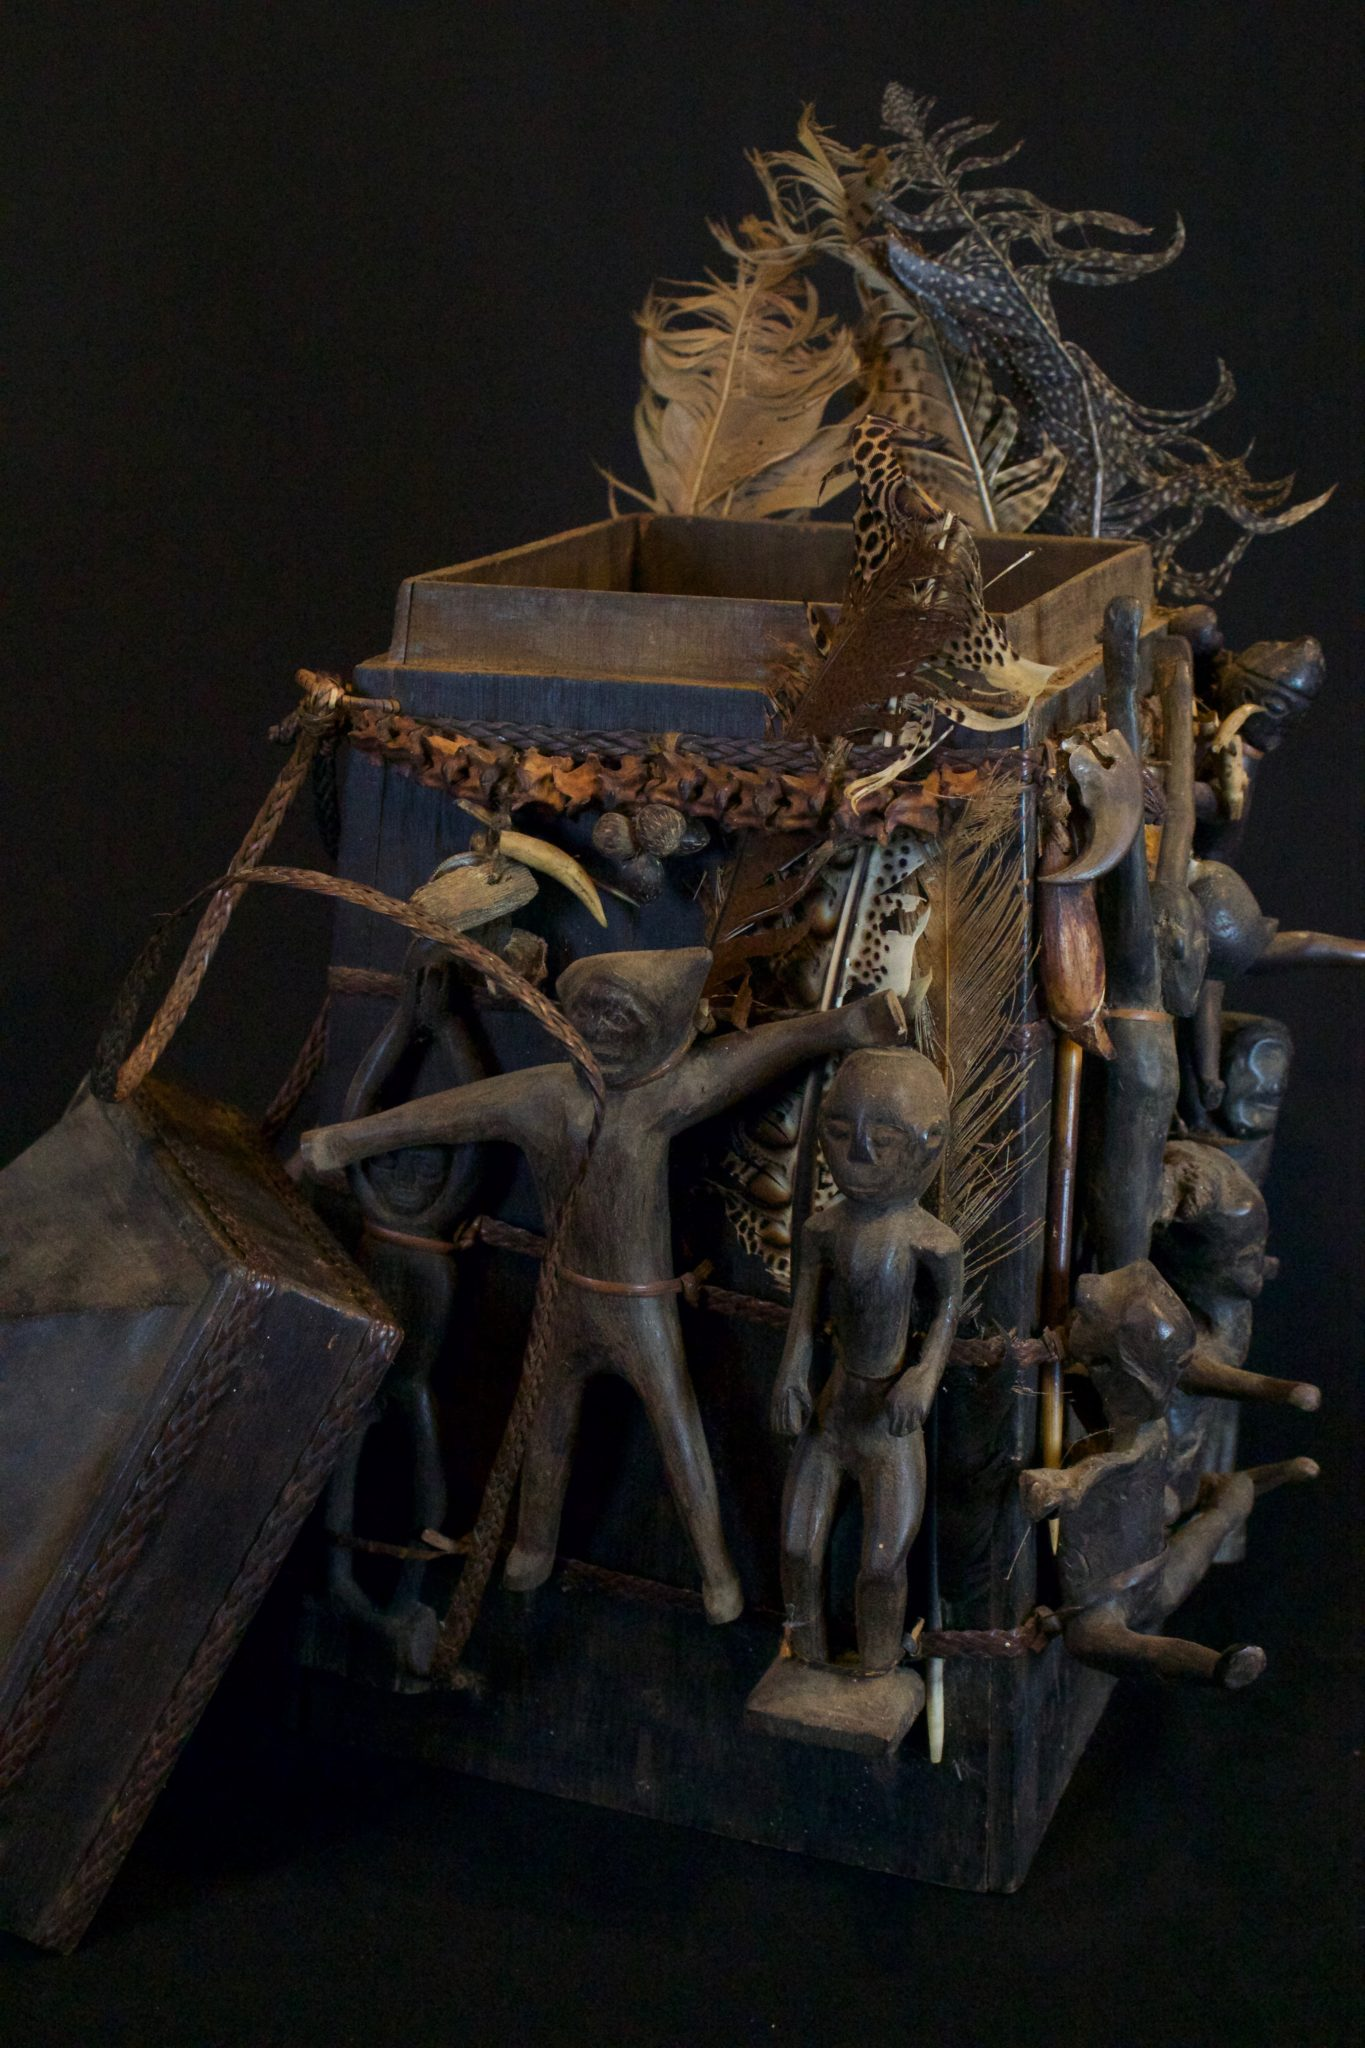 """'Lupong Manang' Shaman's Medicine Carrier/Backpack with Healing Charm Figures (rare), East Kalimantan, Borneo, Indonesia, Dayak tribe. Late 19th to early 20th c, Wood, braided reed, feathers. The Shaman made his own medicine kit to contain items for healing, protections and predictions – such as special teeth, stones and other items. The figures on the exterior correspond to illnesses and other conditions or ailments. 17 ½"""" x 13"""" x 13"""", $4800."""